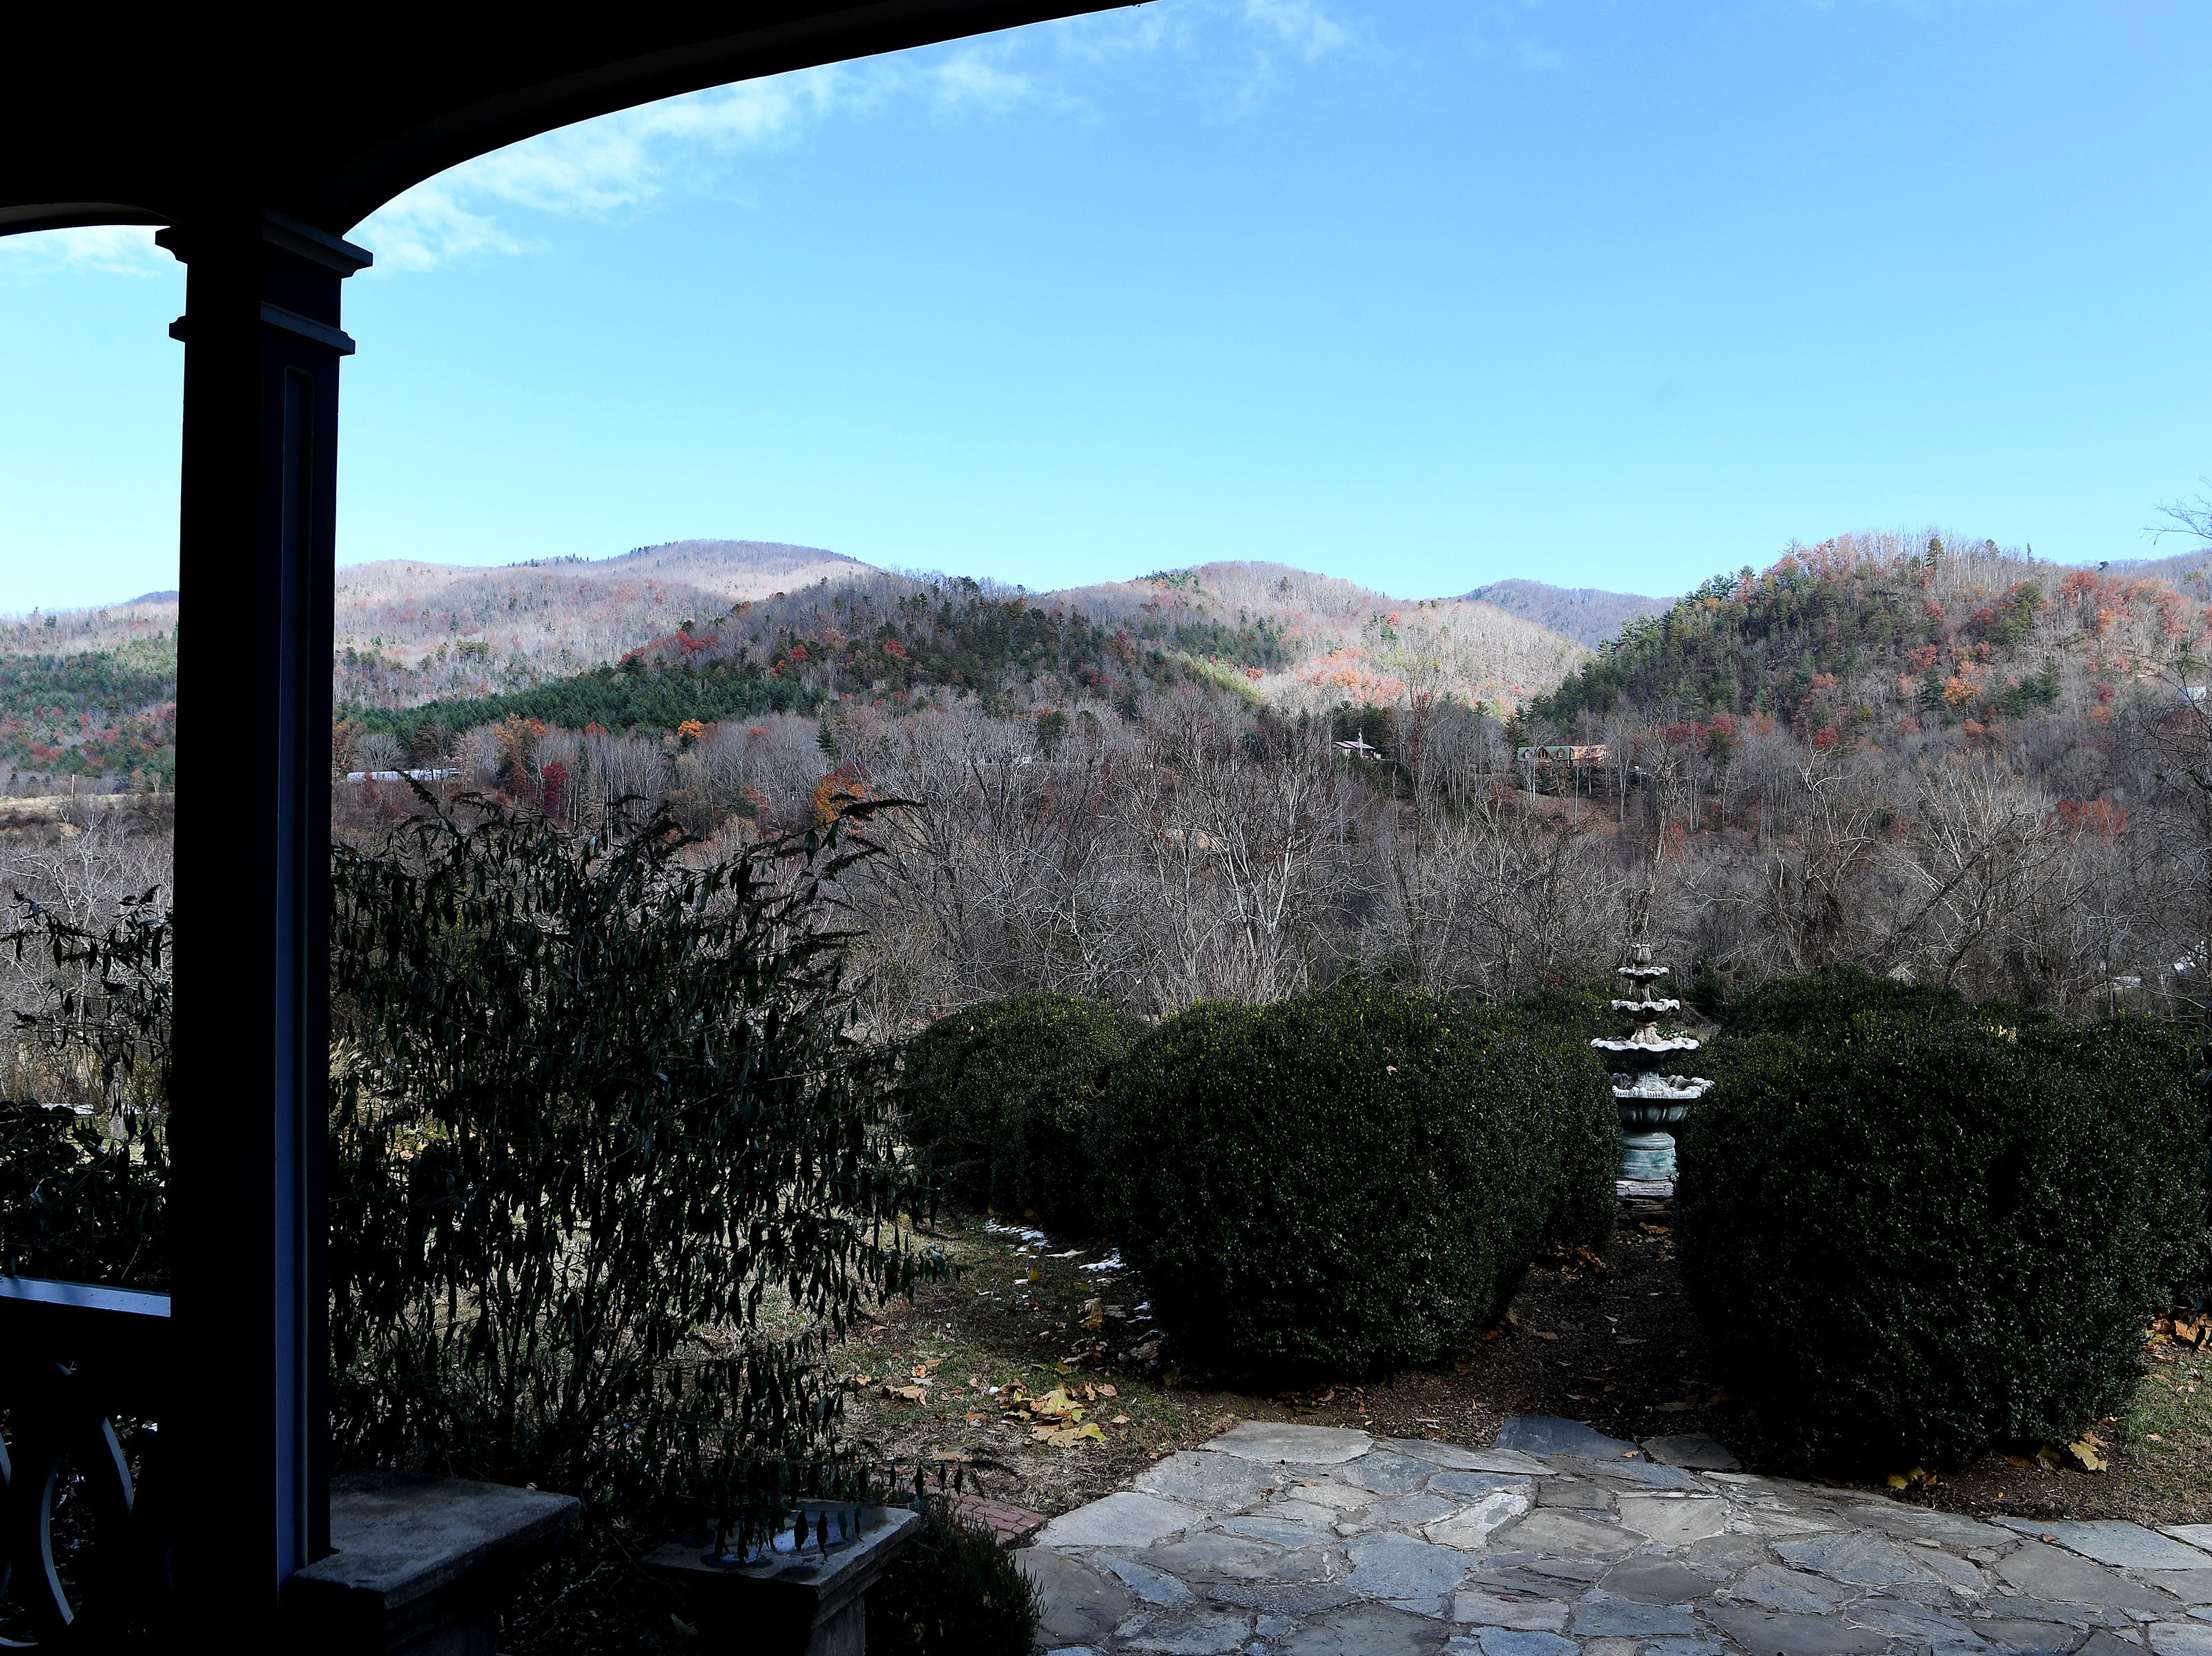 Visitors need only walk to the porch of the Mountain Magnolia Inn in Hot Springs for a spectacular mountain view.